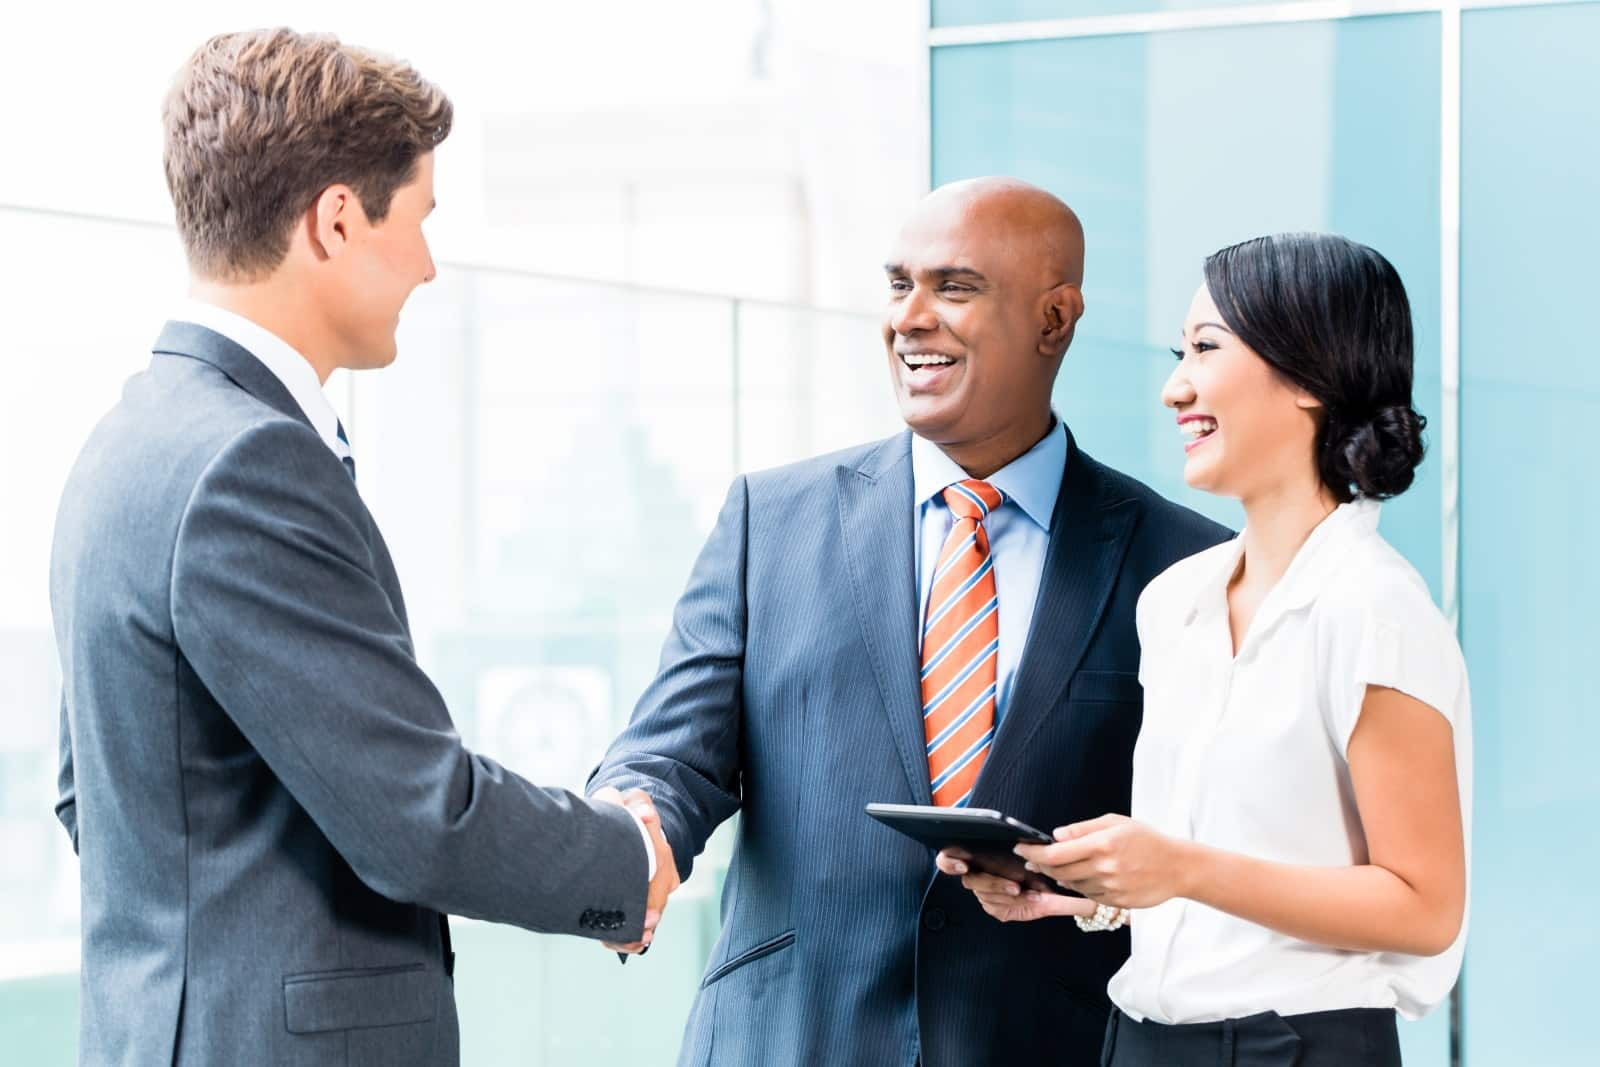 Businessman Shaking Hands With Younger Businessman While Woman Watches